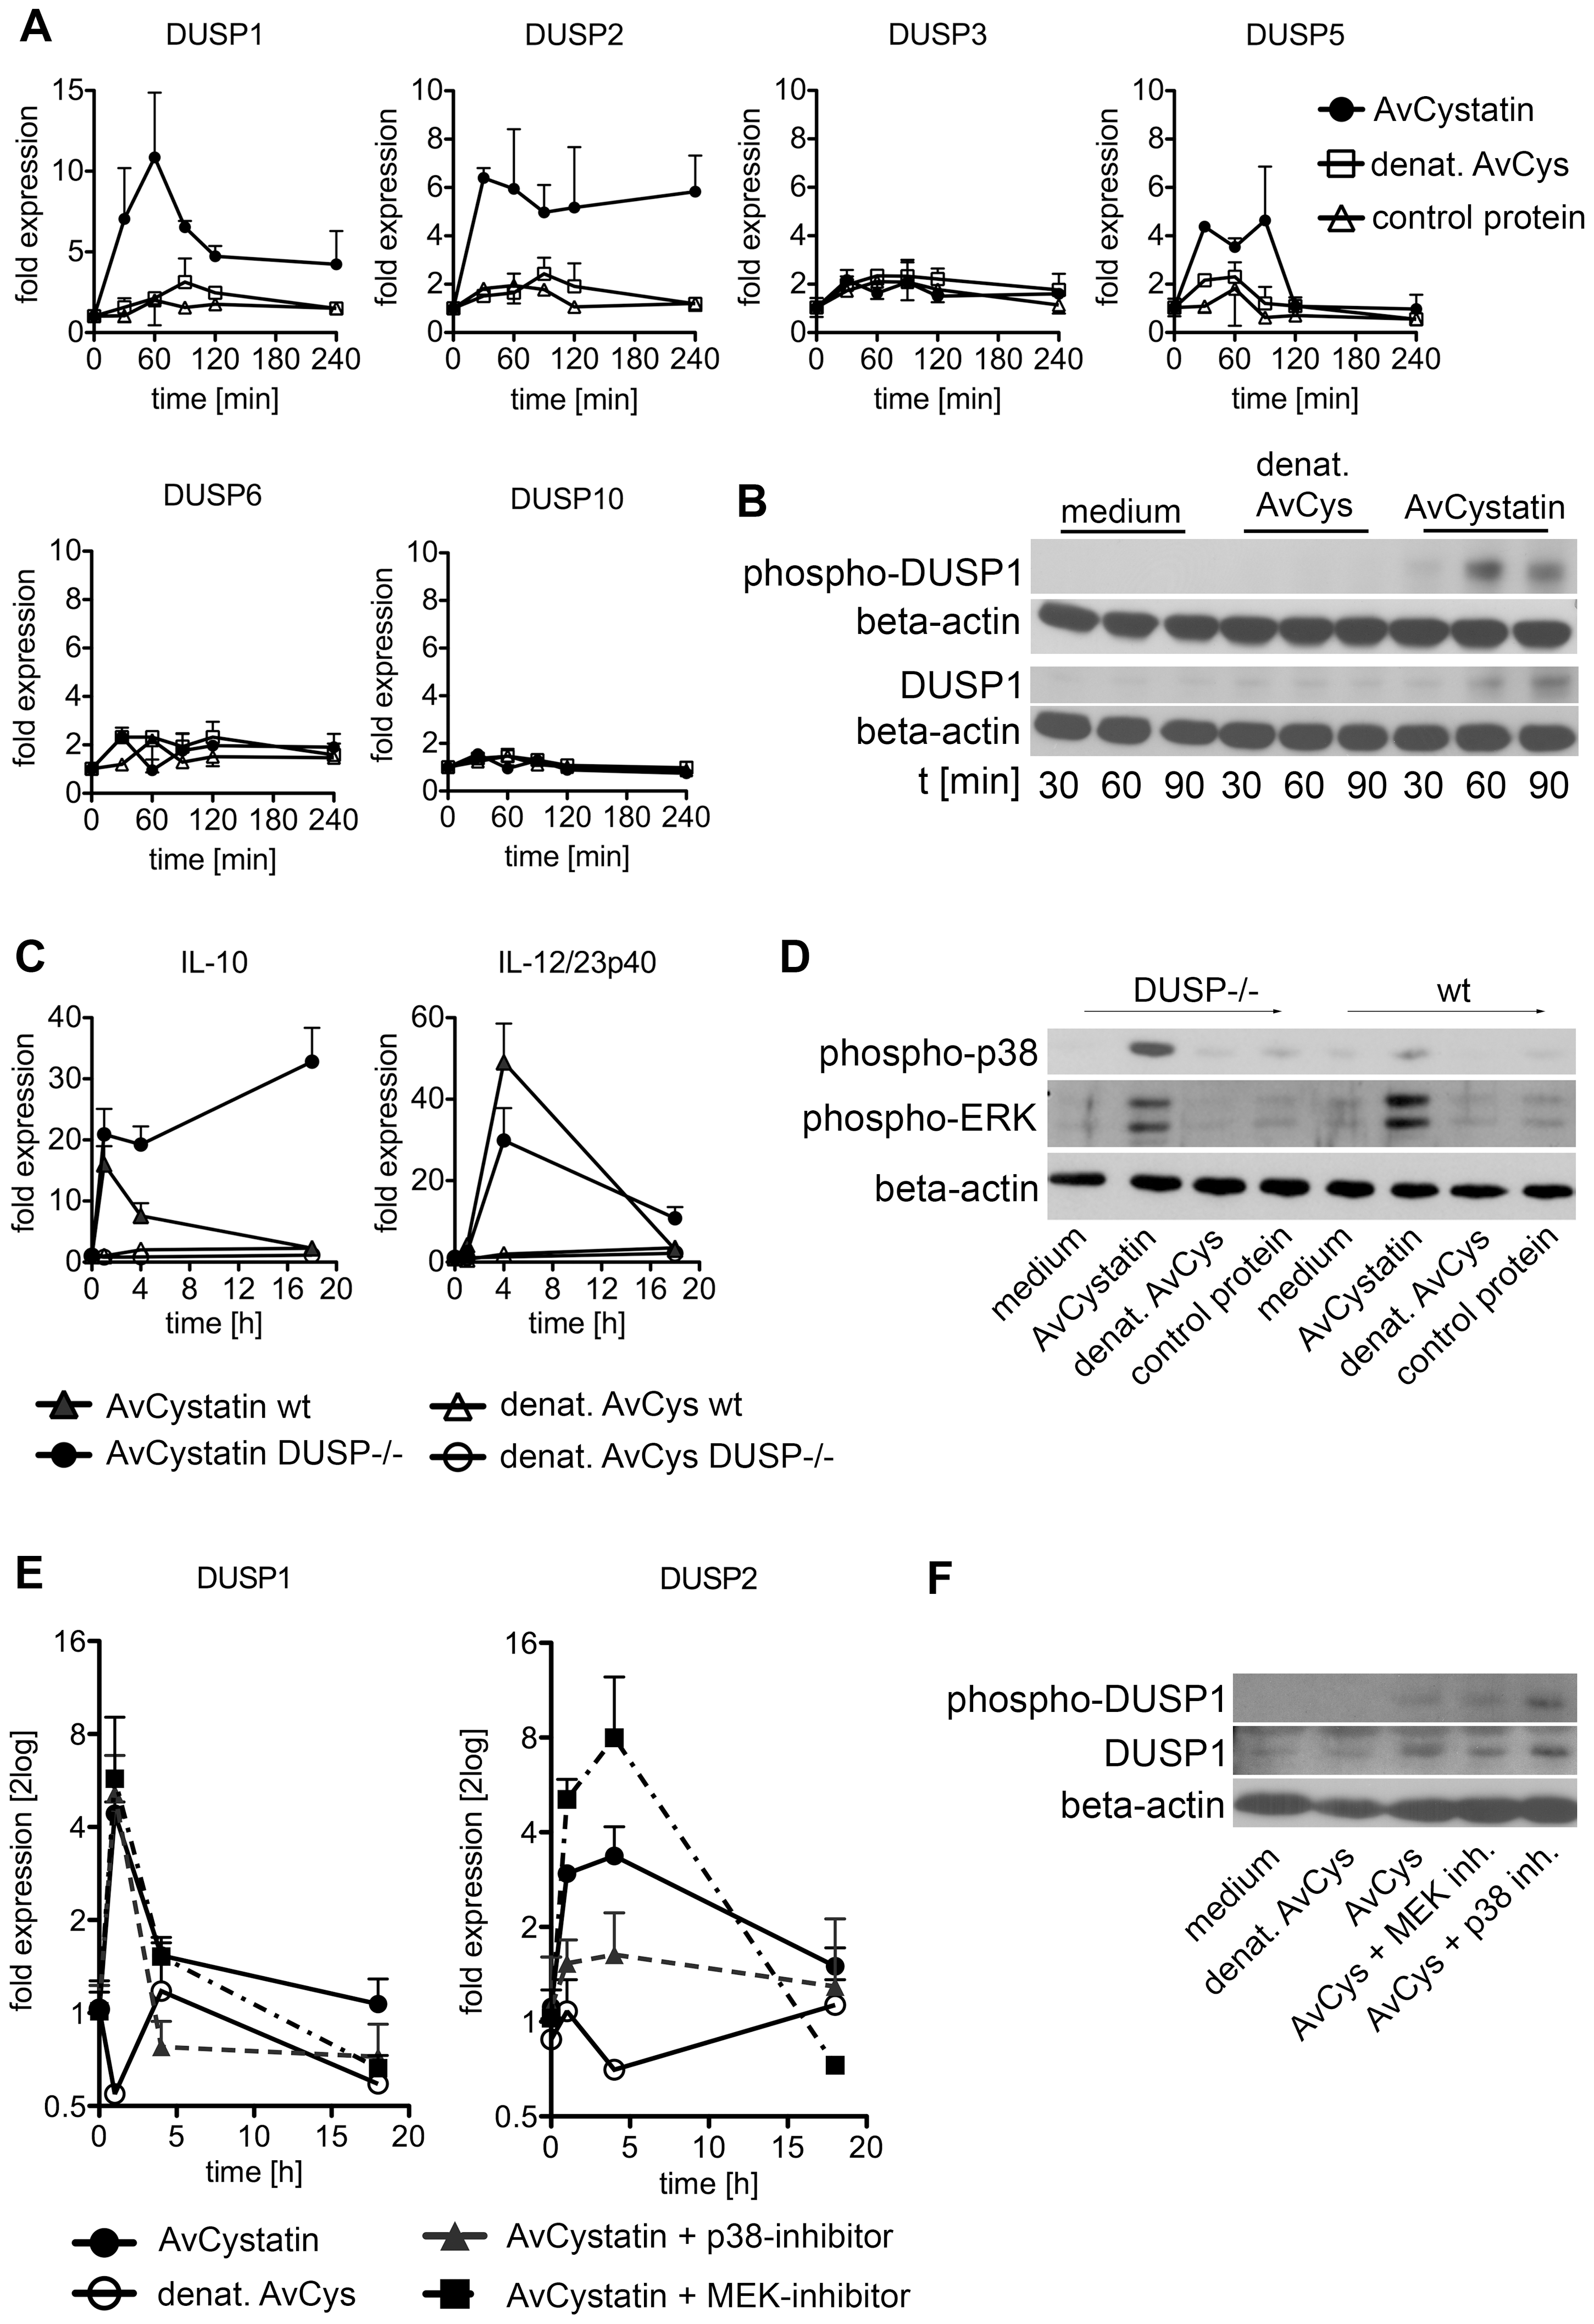 Regulated expression of DUSP1 and DUSP2 in macrophages by AvCystatin.